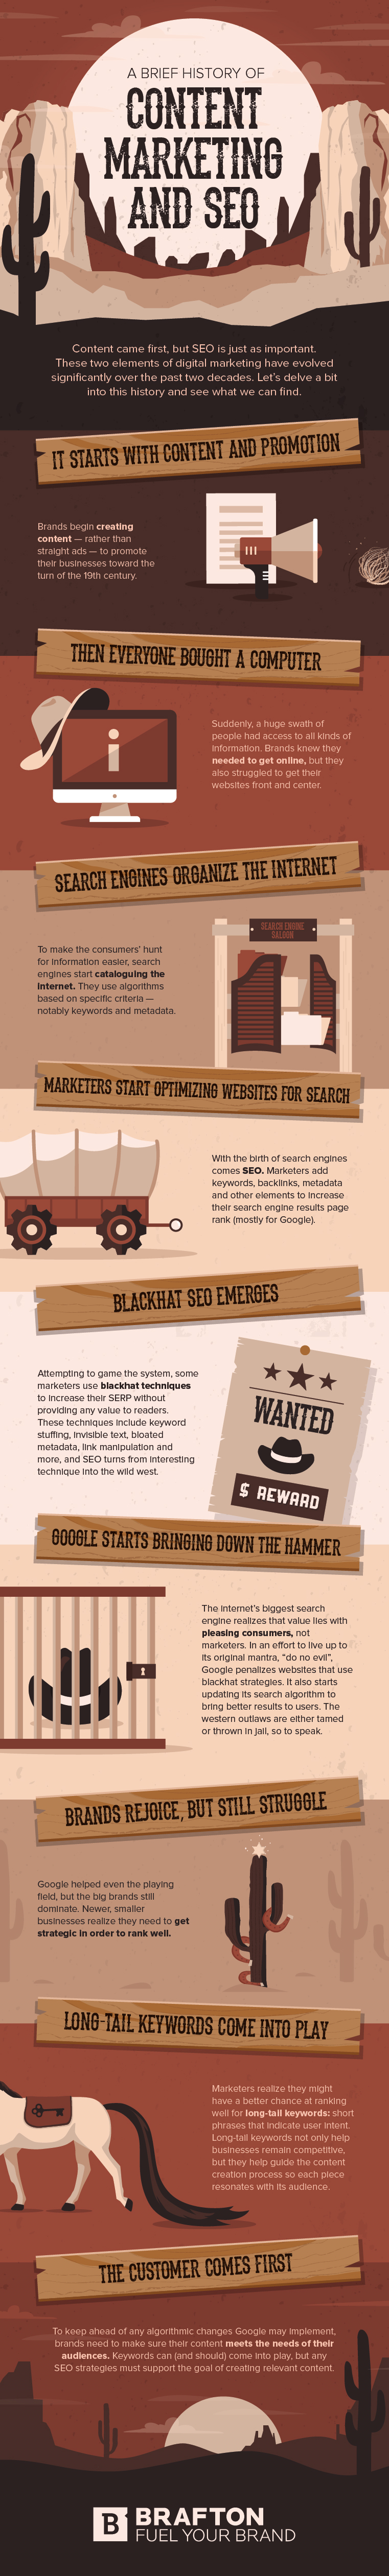 evolution of content marketing and seo infographic